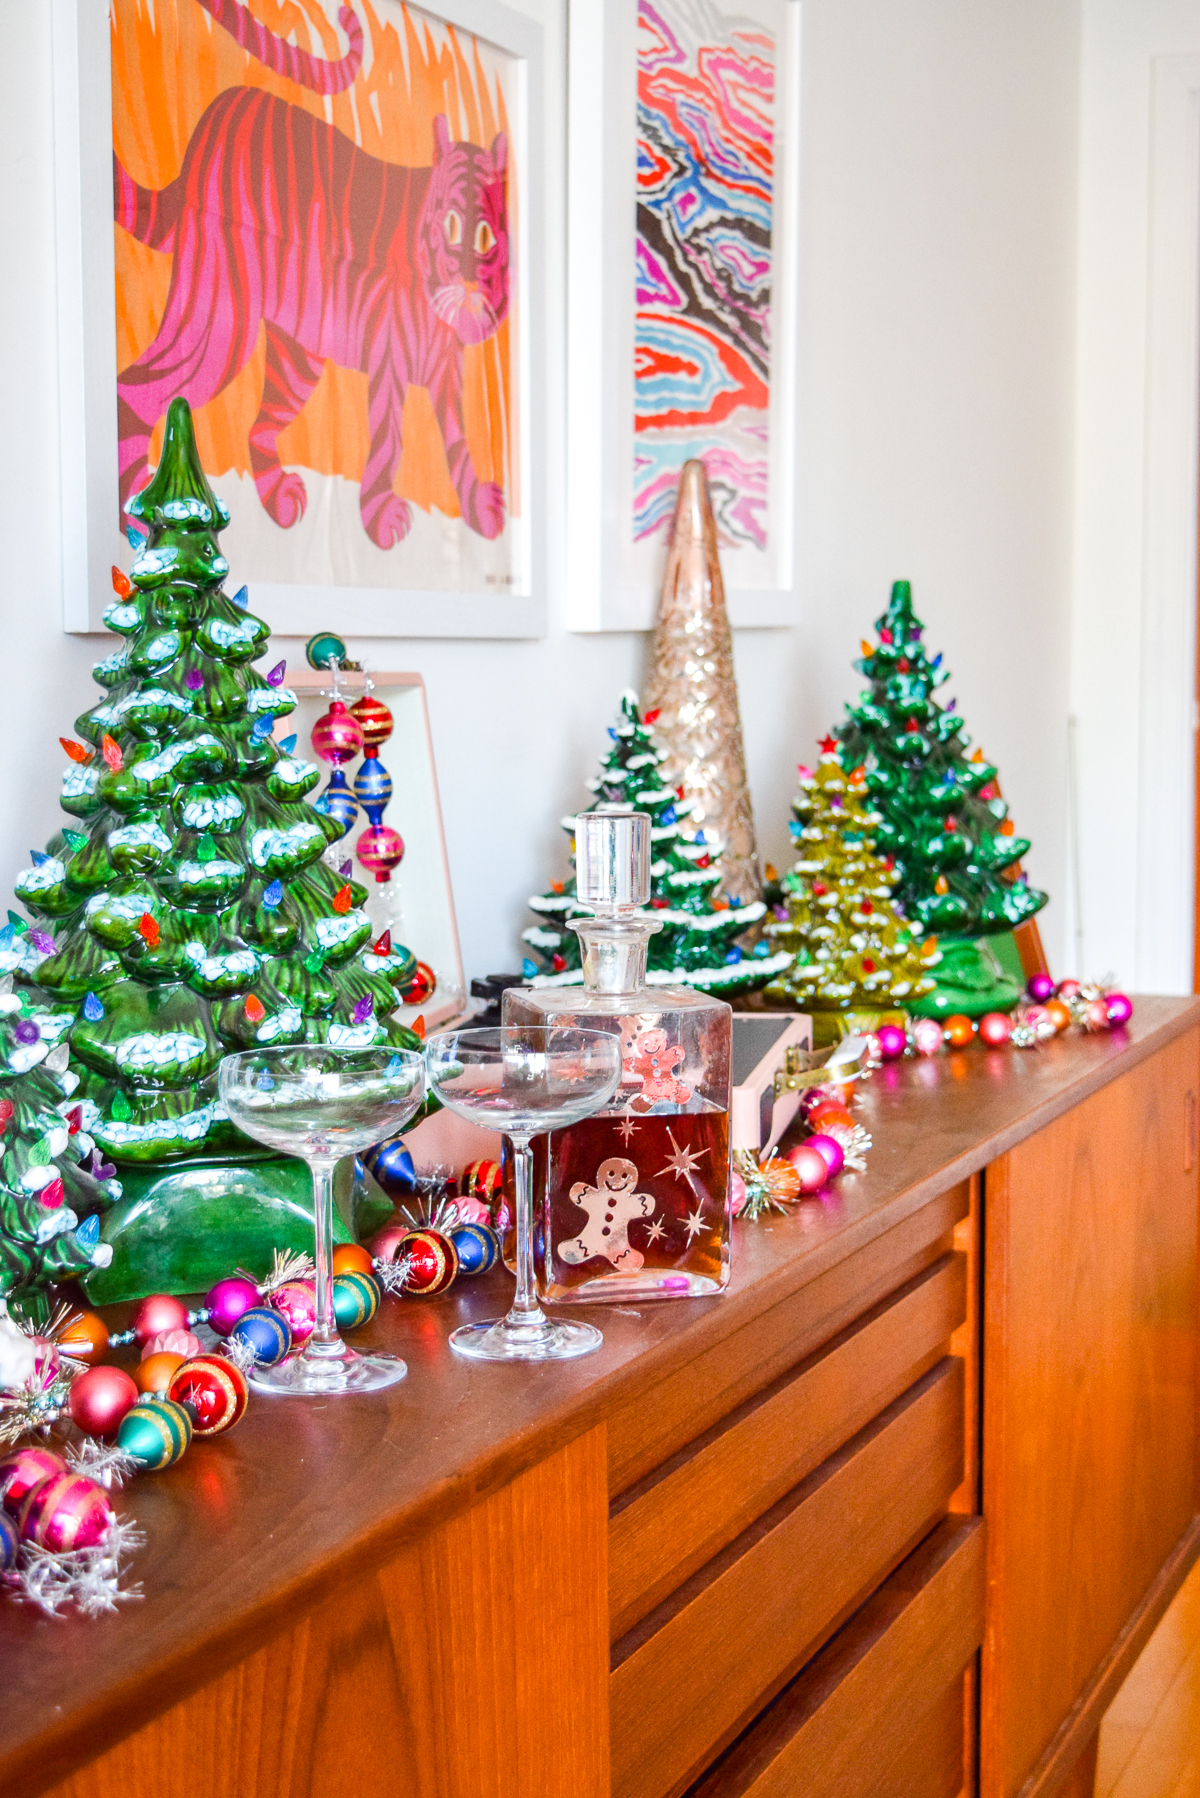 Christmas tree O' Christmas tree! I love me some retro Christmas decor. And if you do too, you'll love my ceramic Christmas tree sideboard display. #ceramictree #retrochristmas